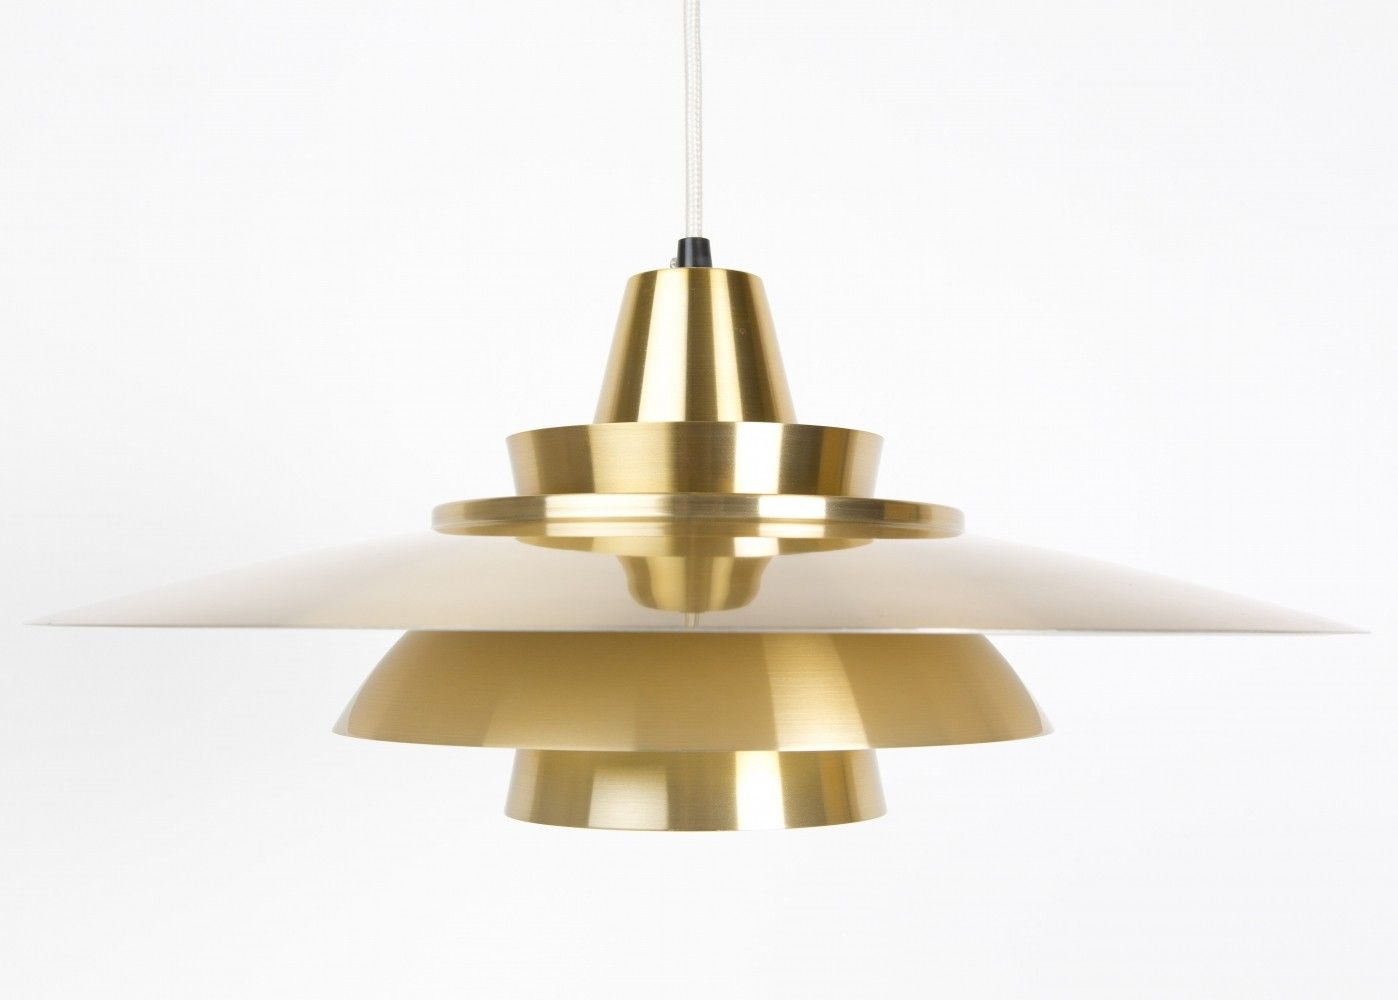 Hanging lamp from the sixties by Mogens Davidsen for David Super Light AS